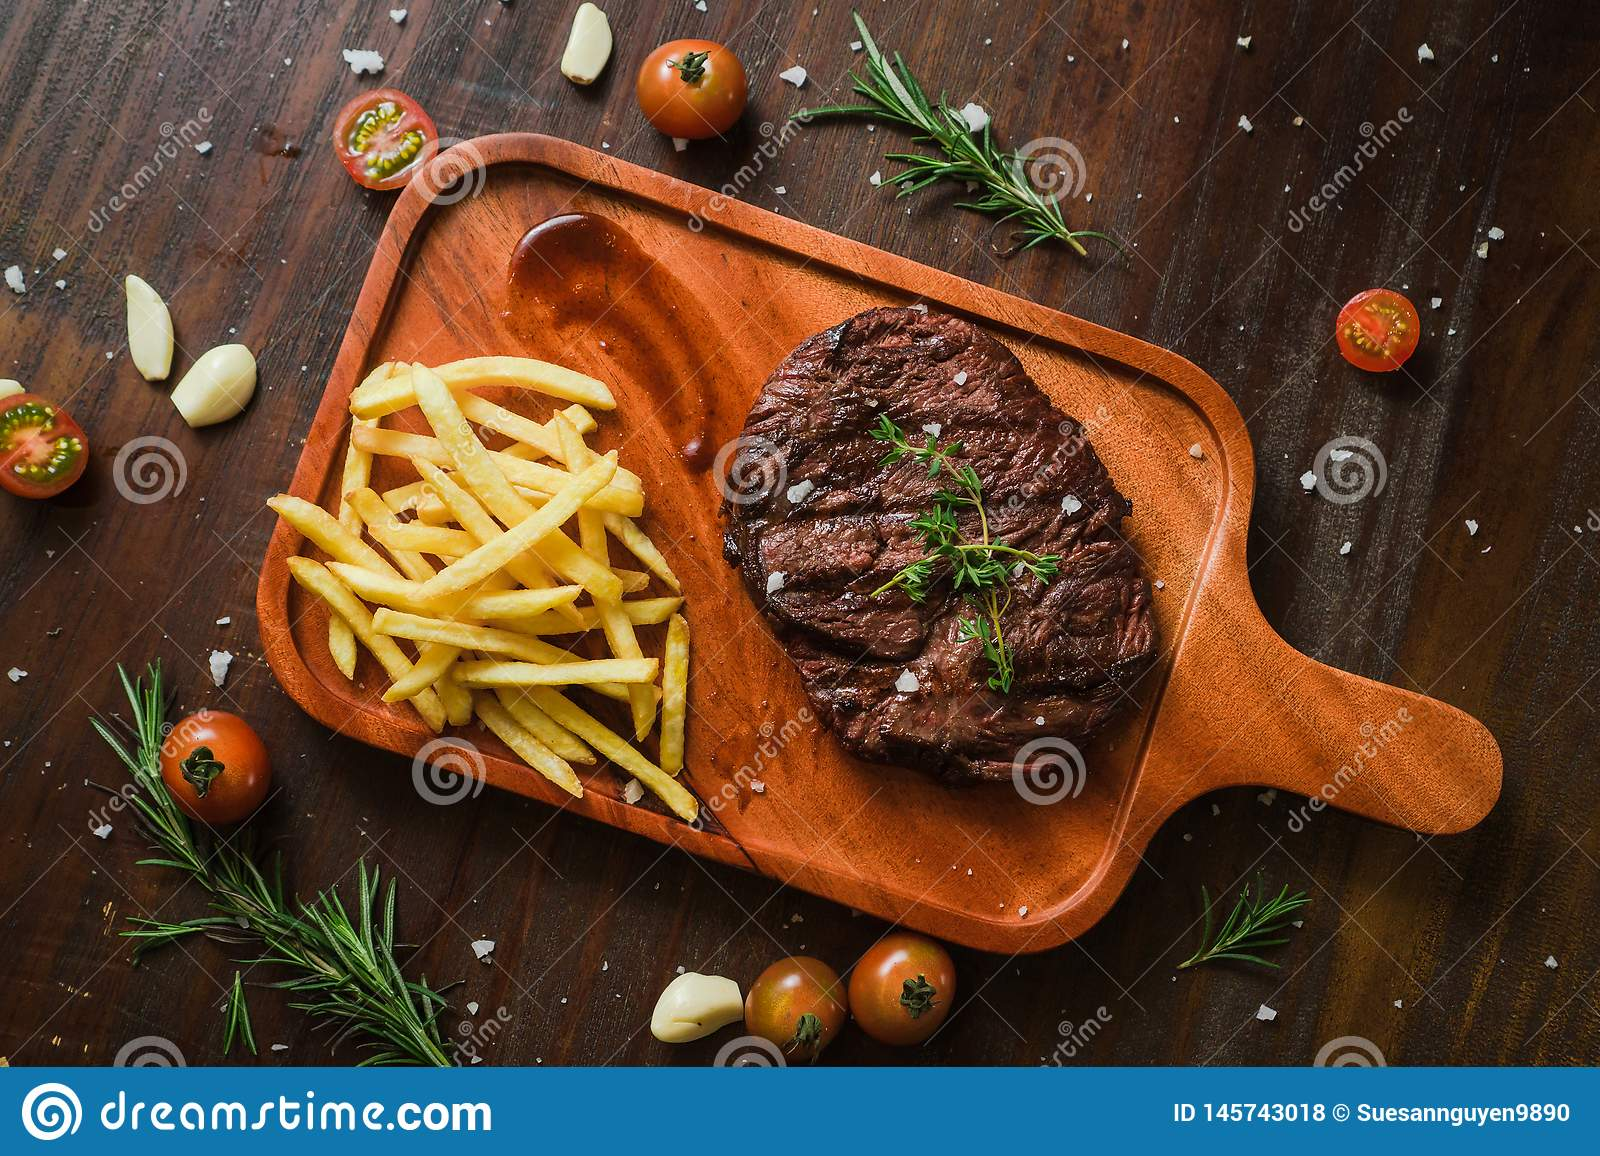 Grilled kebab grilled meat steak lies with french frieson a Rustic old elegant wooden cutlery cutting chopping board chili, with t